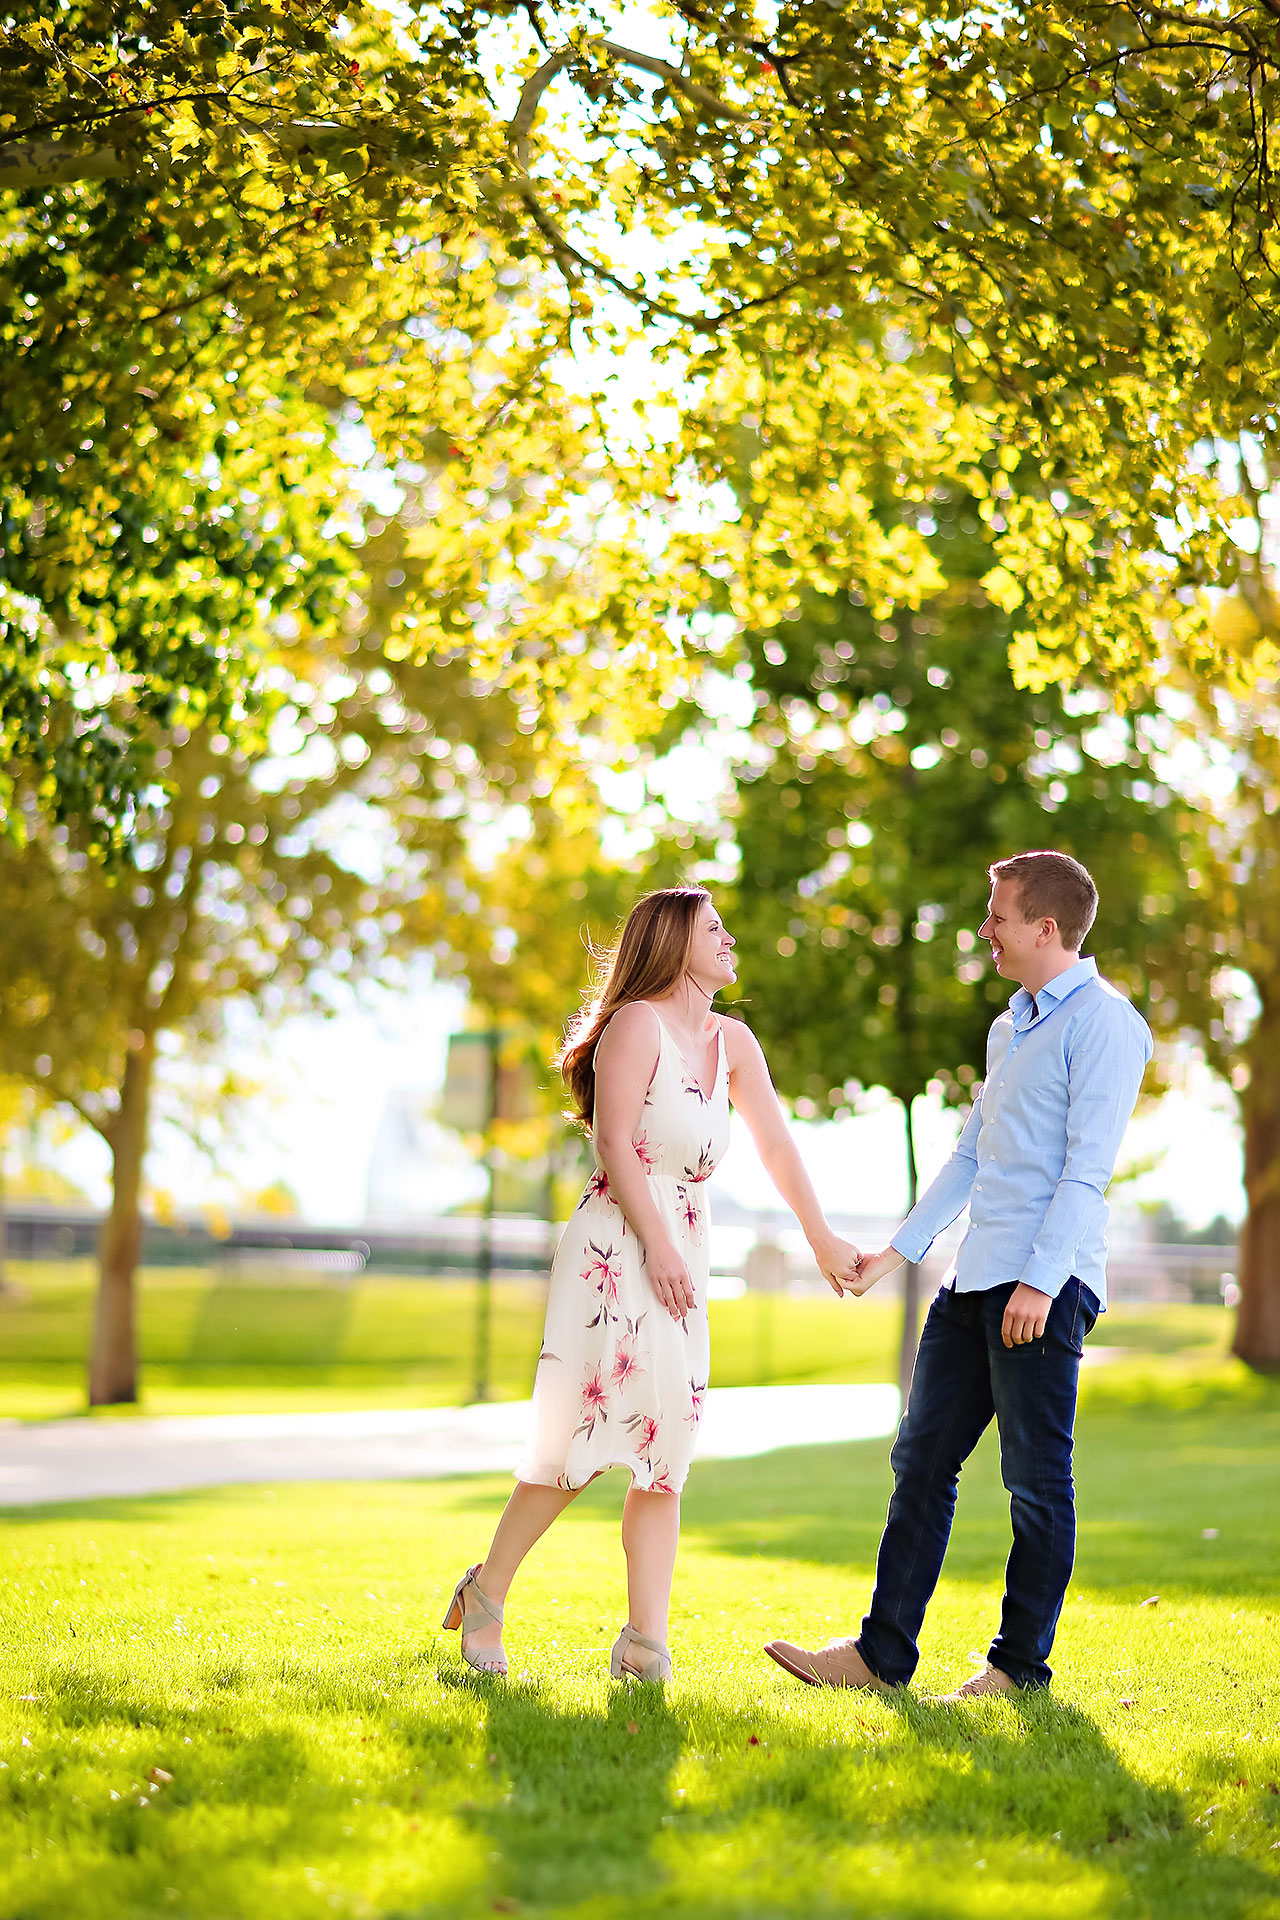 Chelsea Jeff Downtown Indy Engagement Session 186